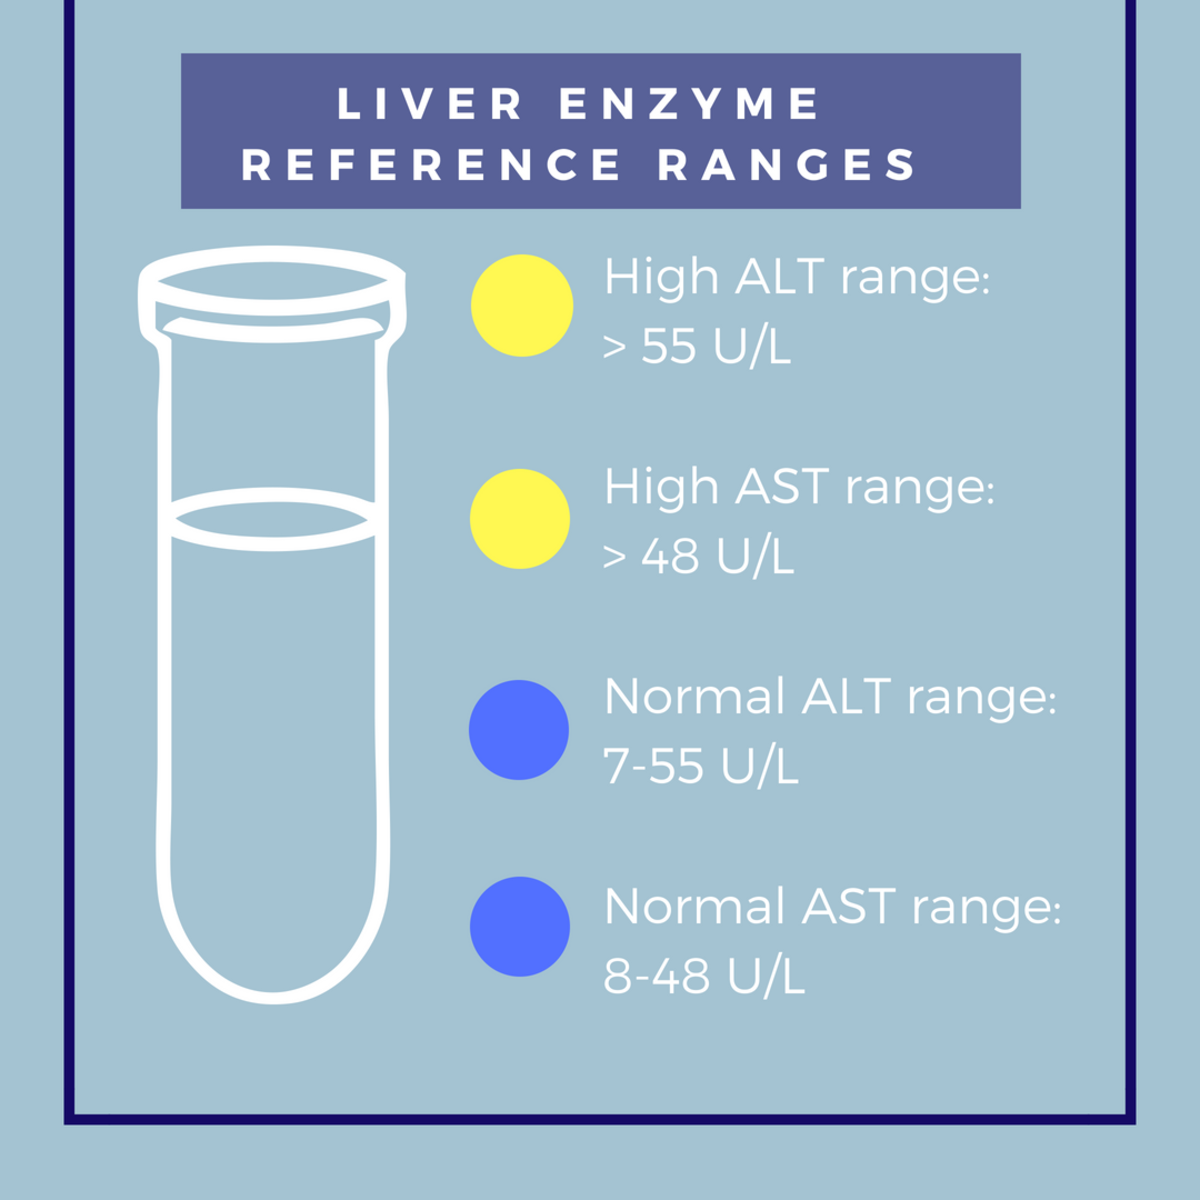 Normal and high reference ranges for ALT and AST liver values.